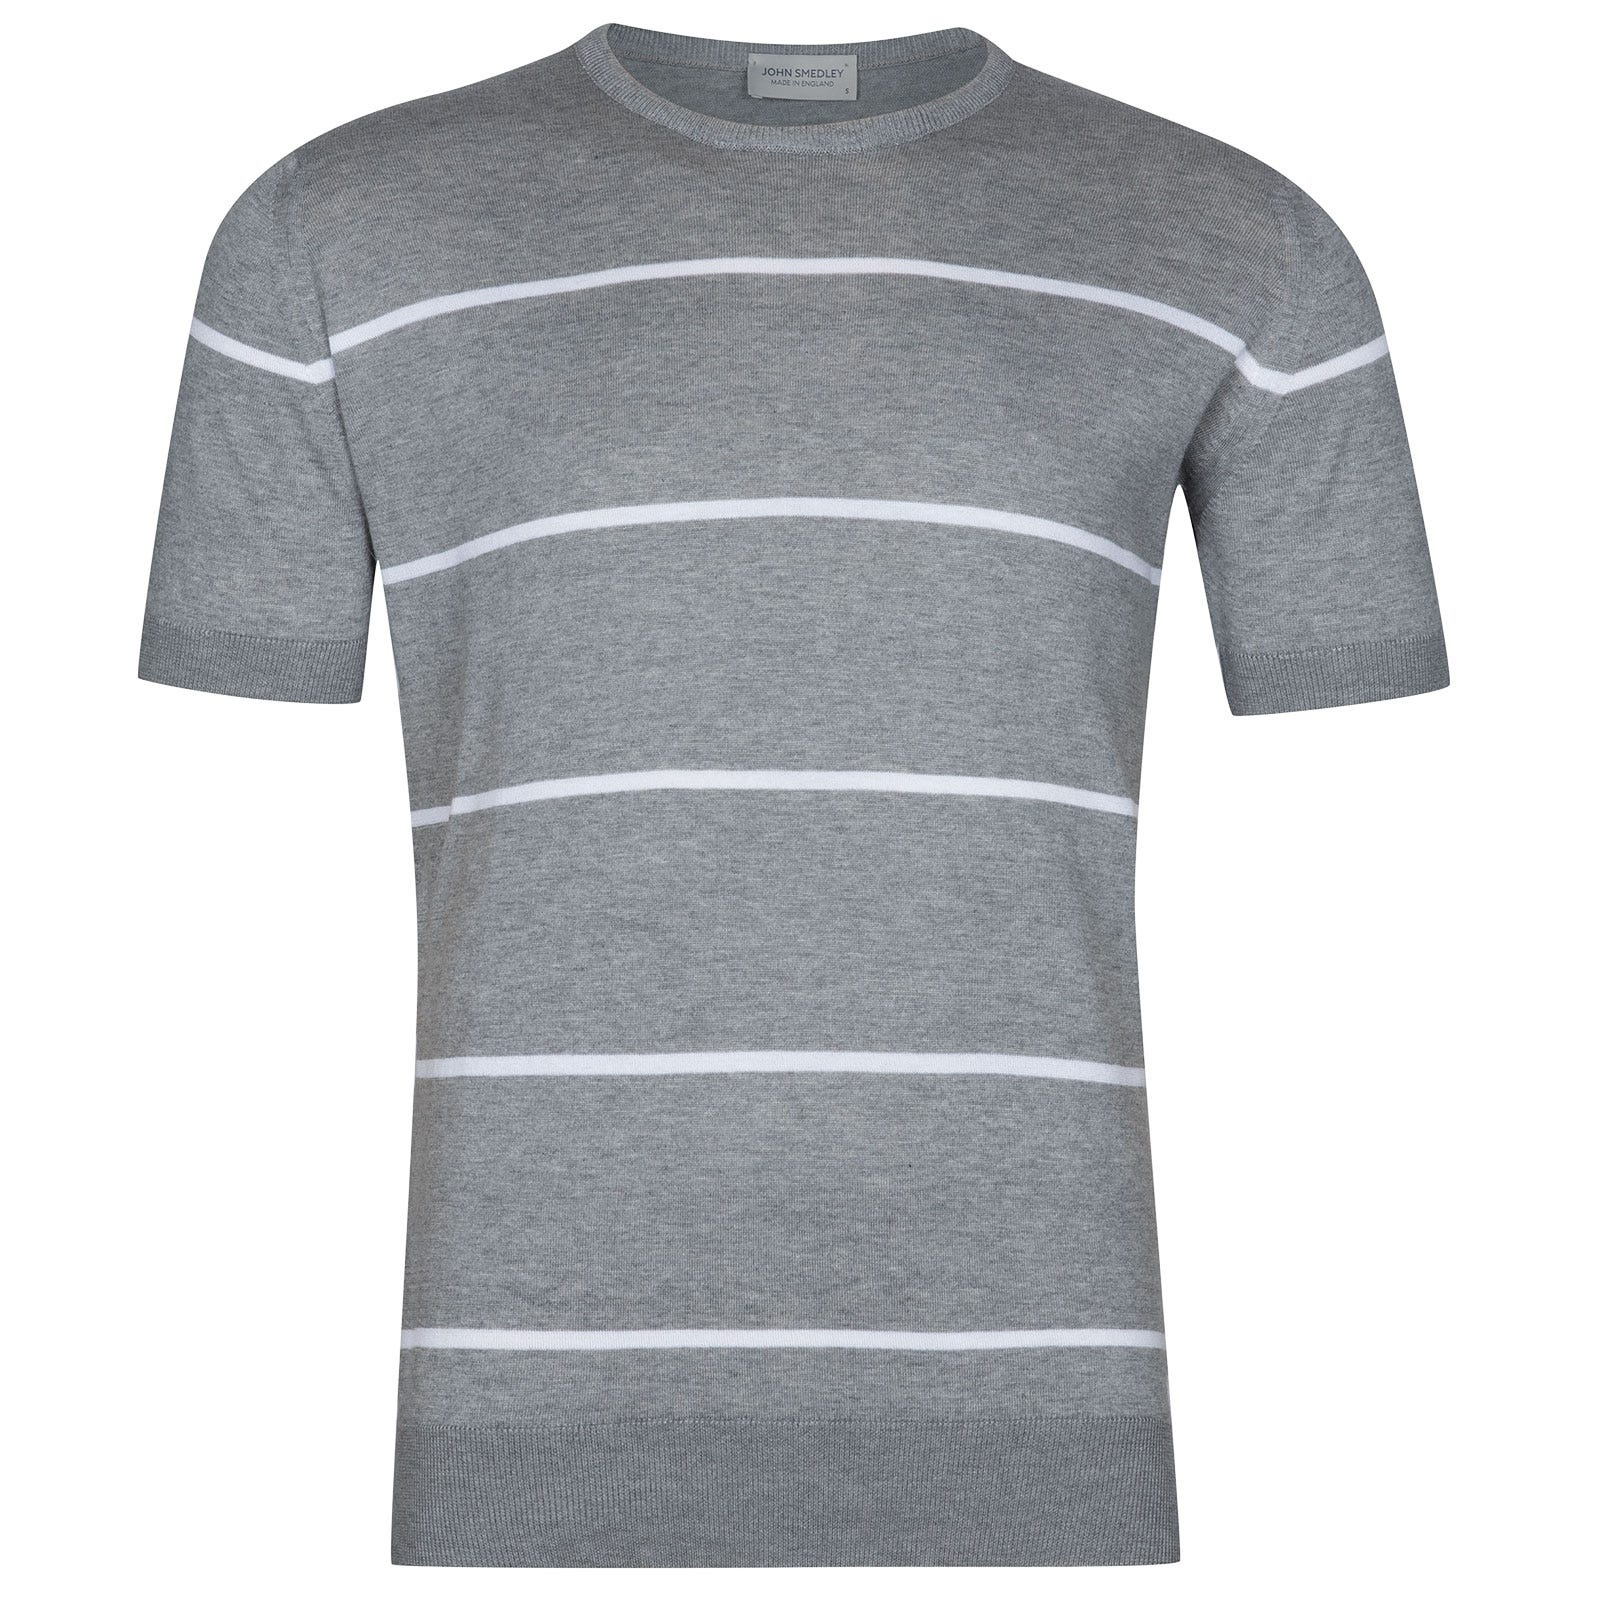 John Smedley Barlby Sea Island Cotton T-Shirt in Silver-XXL